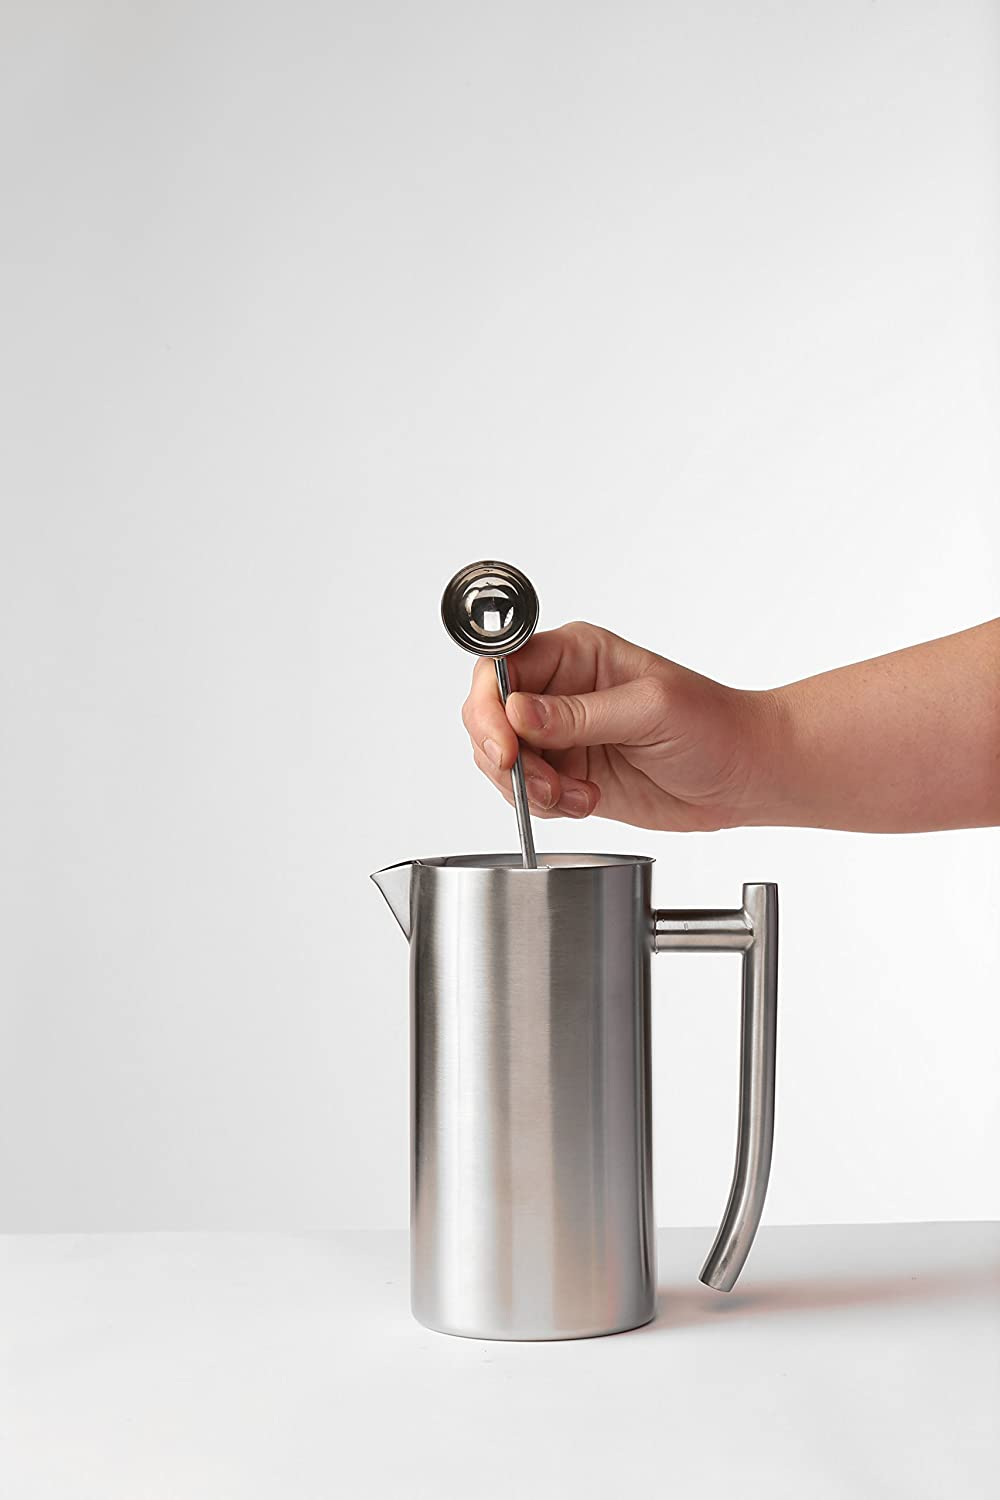 Frieling USA 130 Double Wall Stainless Steel French Press Coffee Maker 44 oz Silver